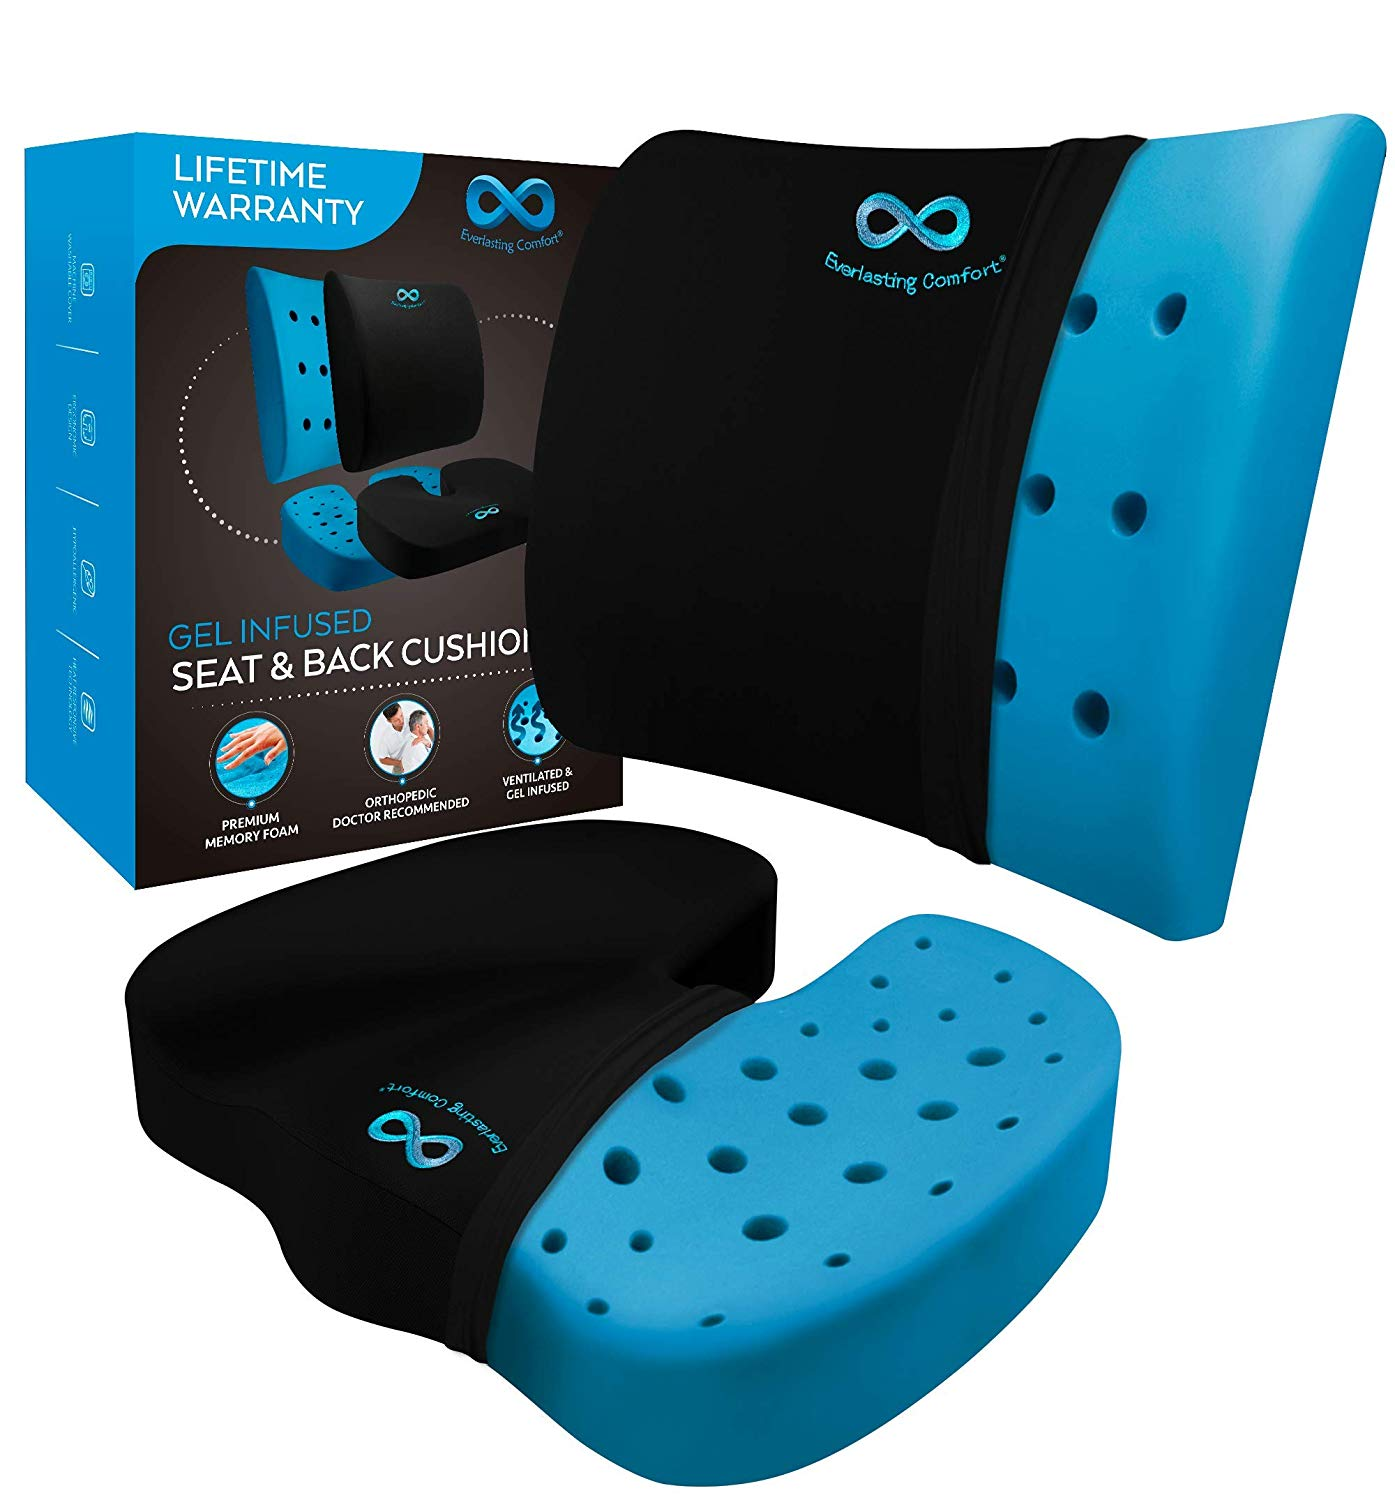 Memory Foam Seat Cushion/ Back Cushion Combo, Gel Infused & Ventilated, Orthopedic Design, Perfect for Office Chair